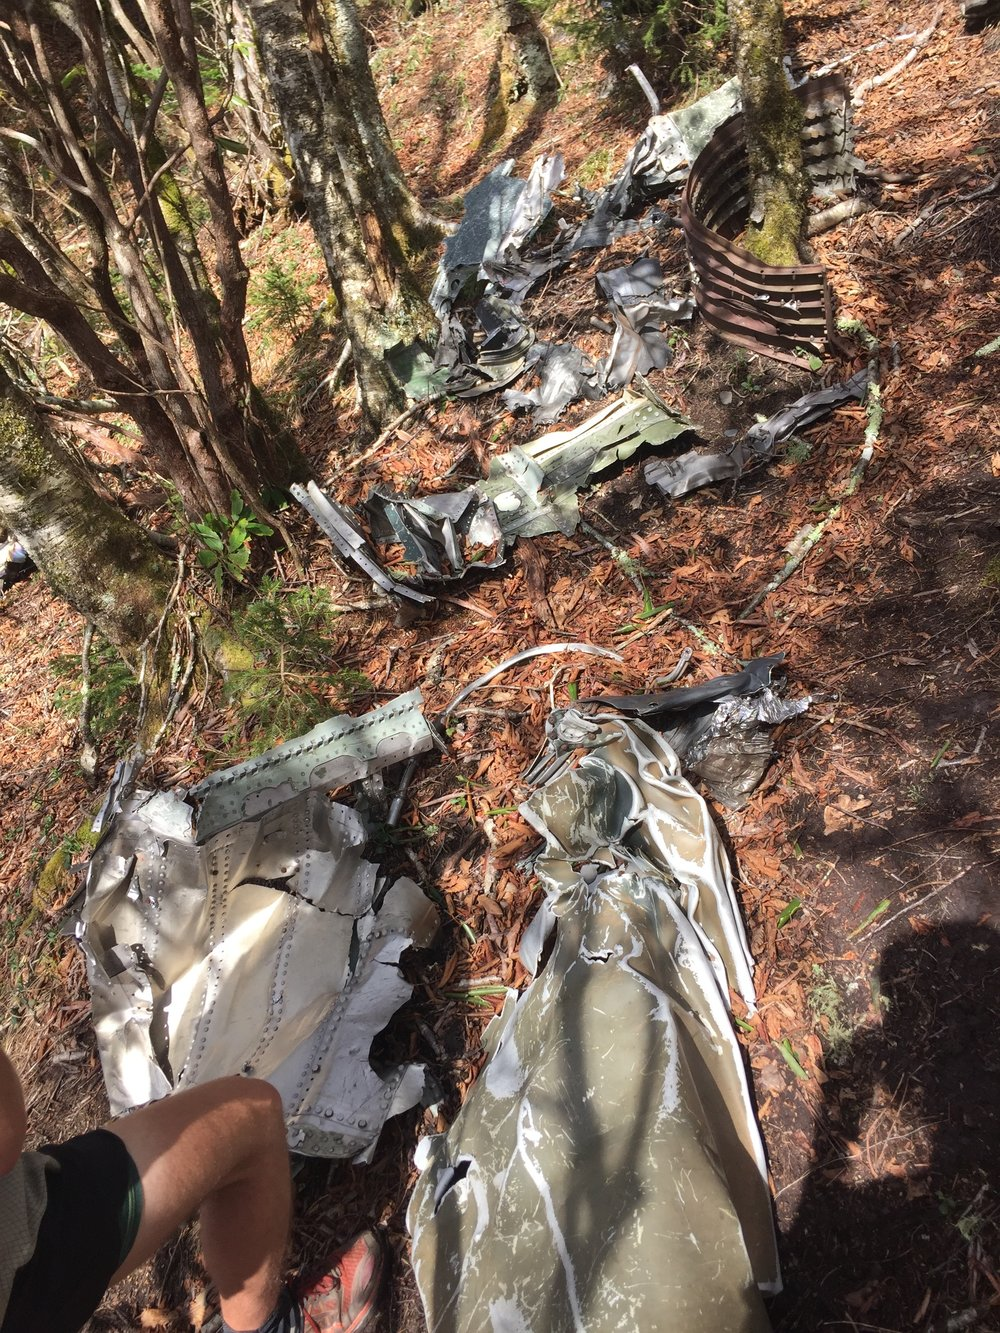 Plane Wreckage off Trail.